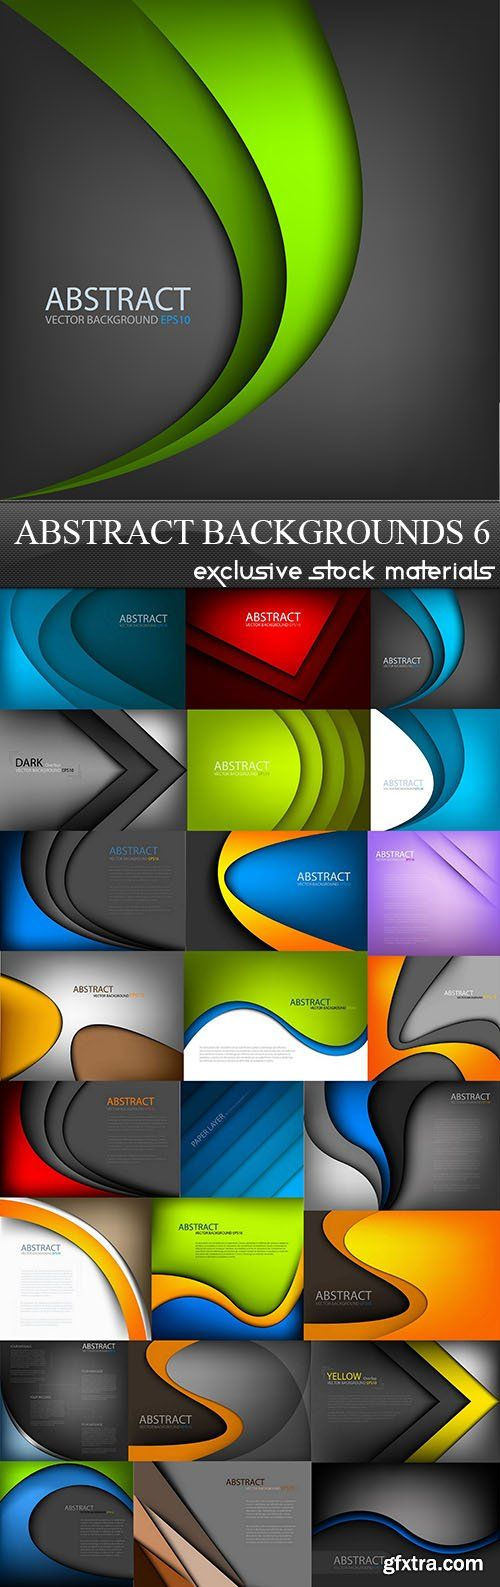 Backgrounds » page 13 » Vector, Photoshop PSD, Template, 3D, AfterEffects Sources, Tutorials